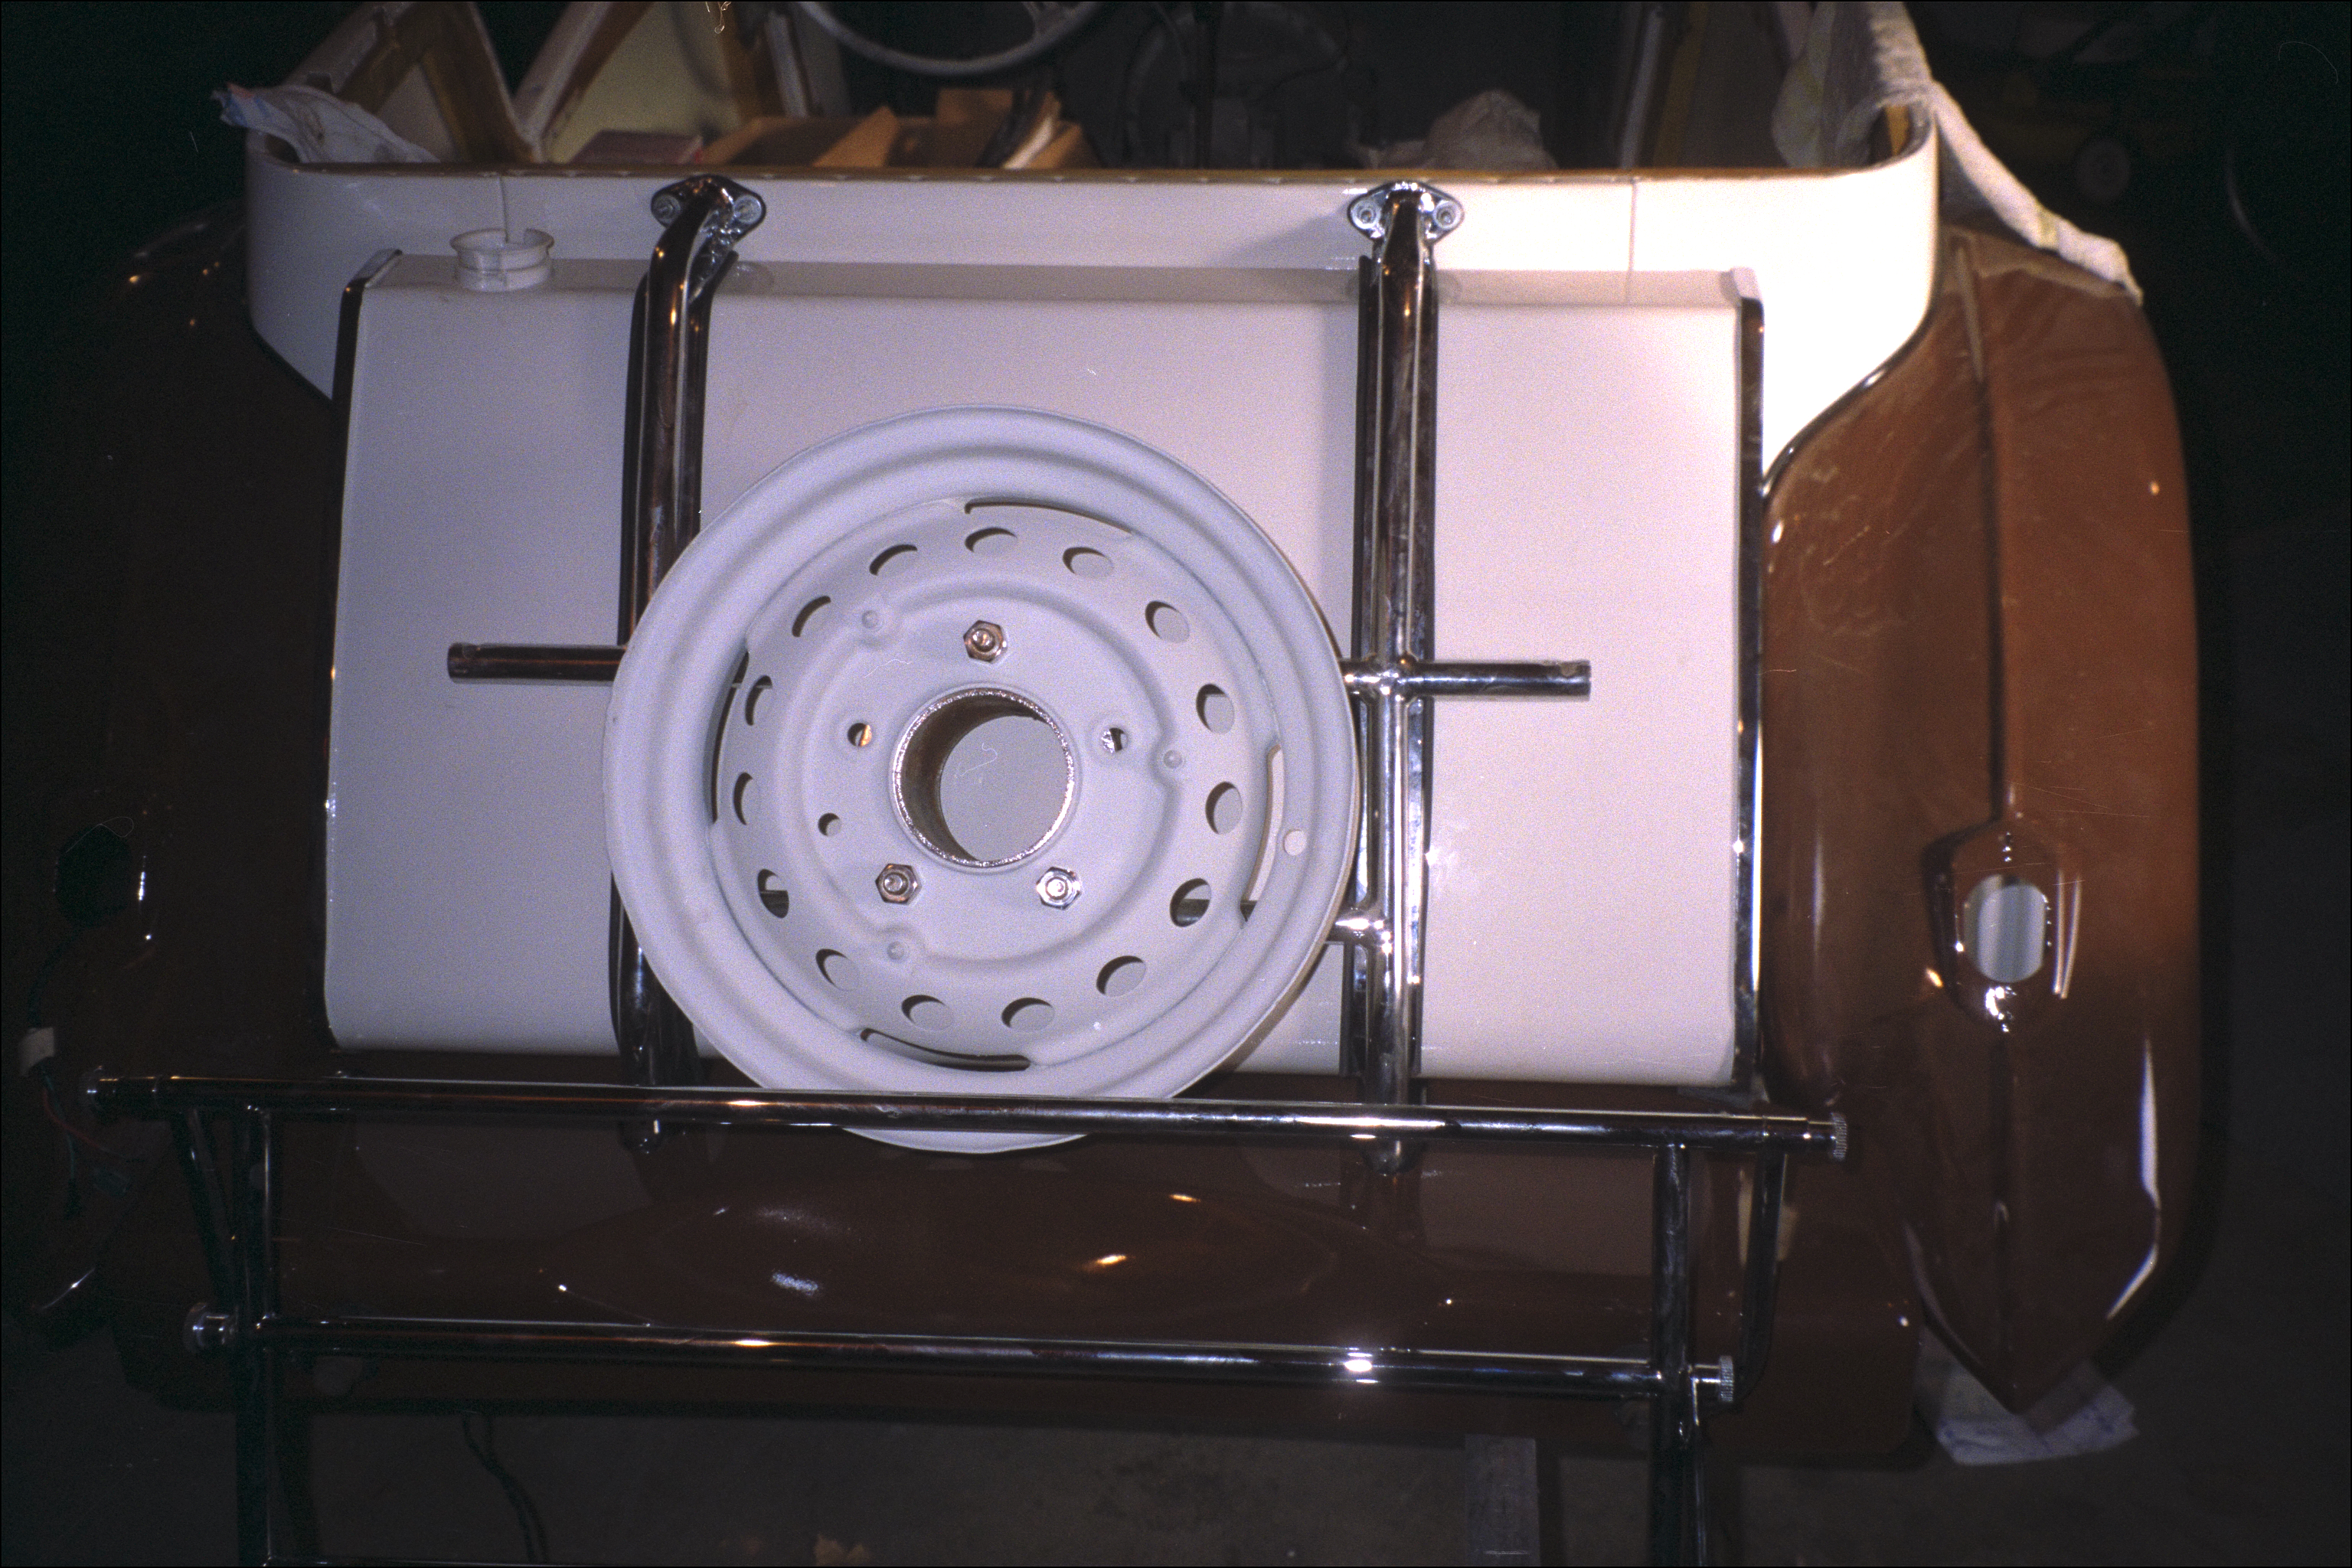 Painted rim on the spare rack (rear view)